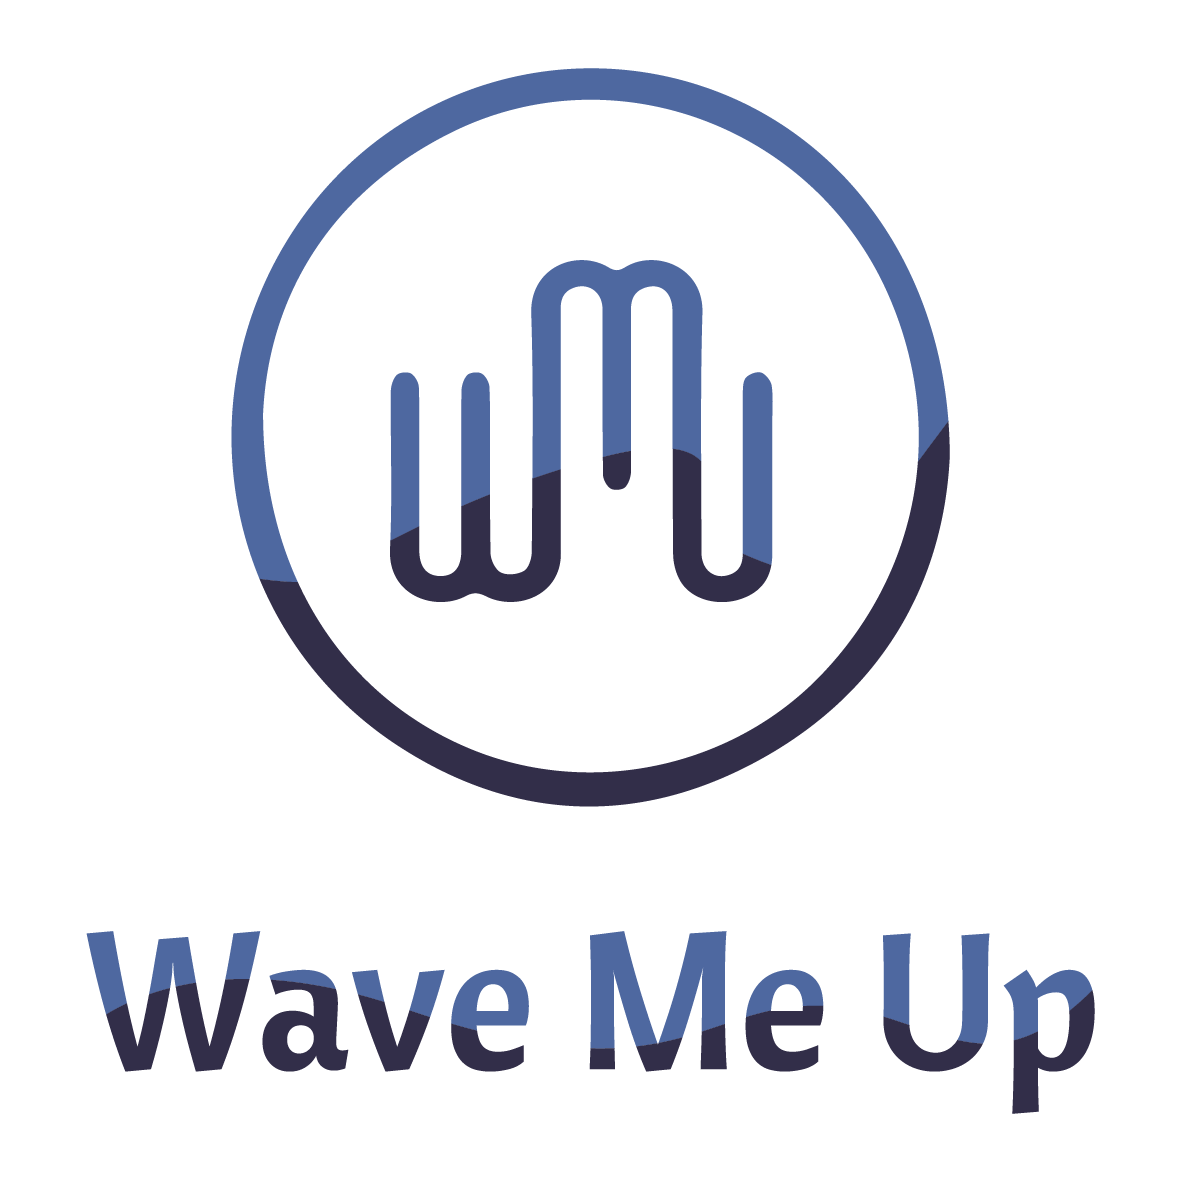 Wave me up